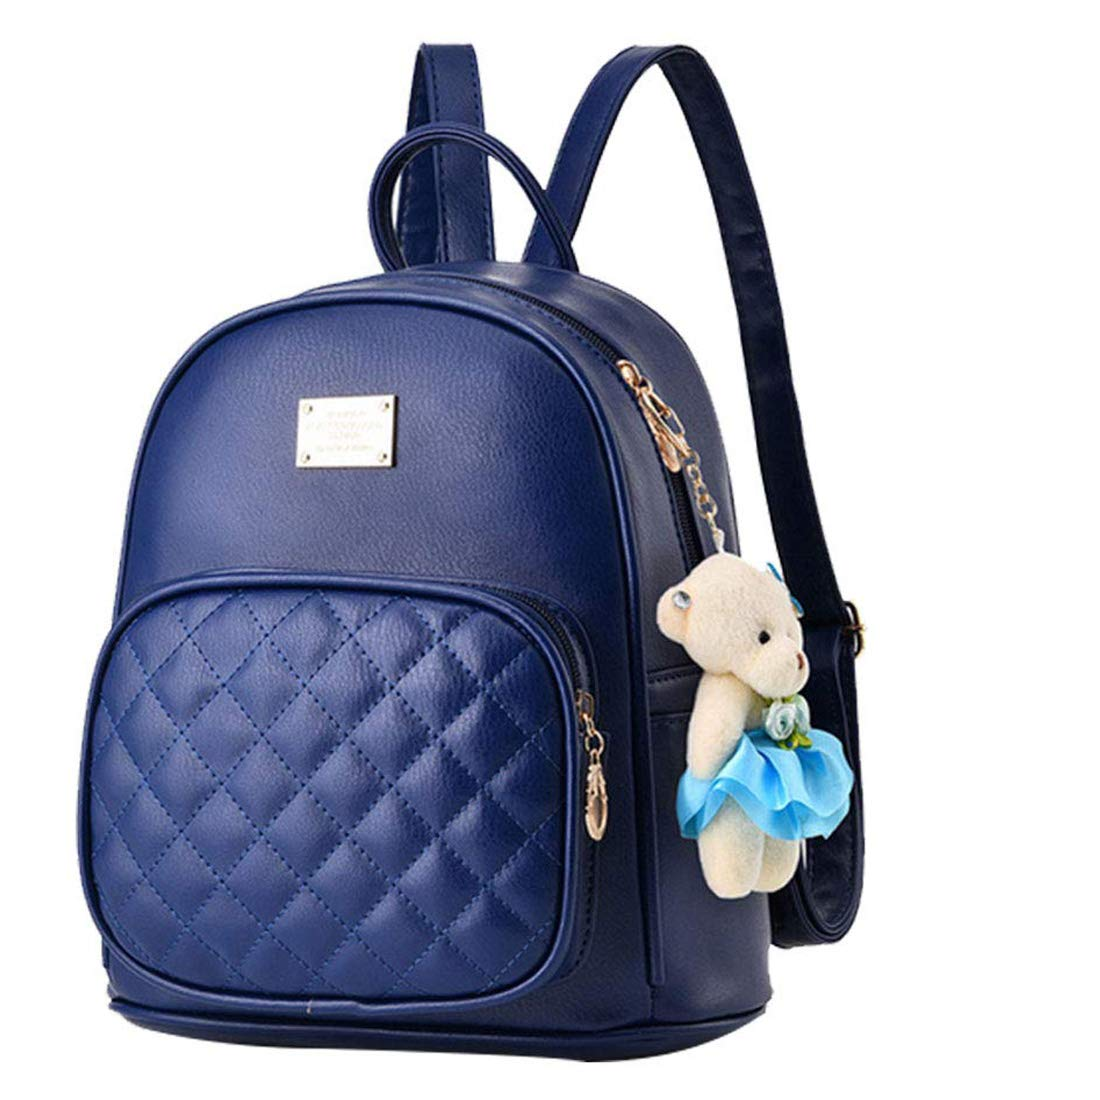 ddf42c7a48 ... Alice Cute Black Mini PU Leather Backpack Fashion Small Daypacks Purse  for Girls and Women Amazon ...